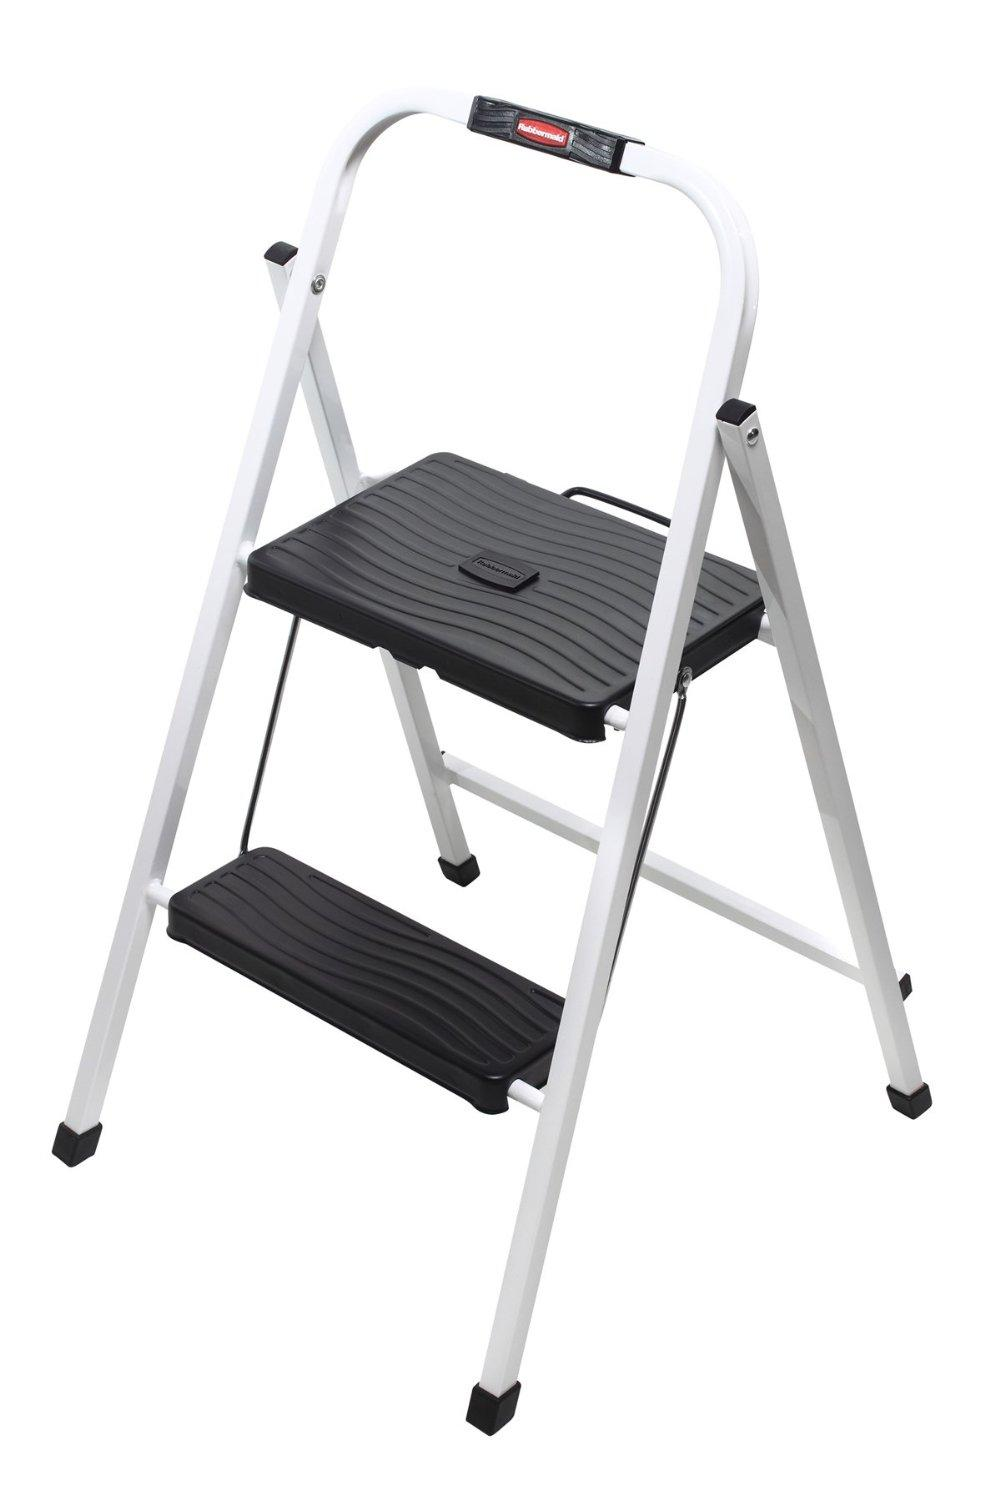 Rubbermaid Rm Hsp2 Folding 2 Step Lightweight Steel Step